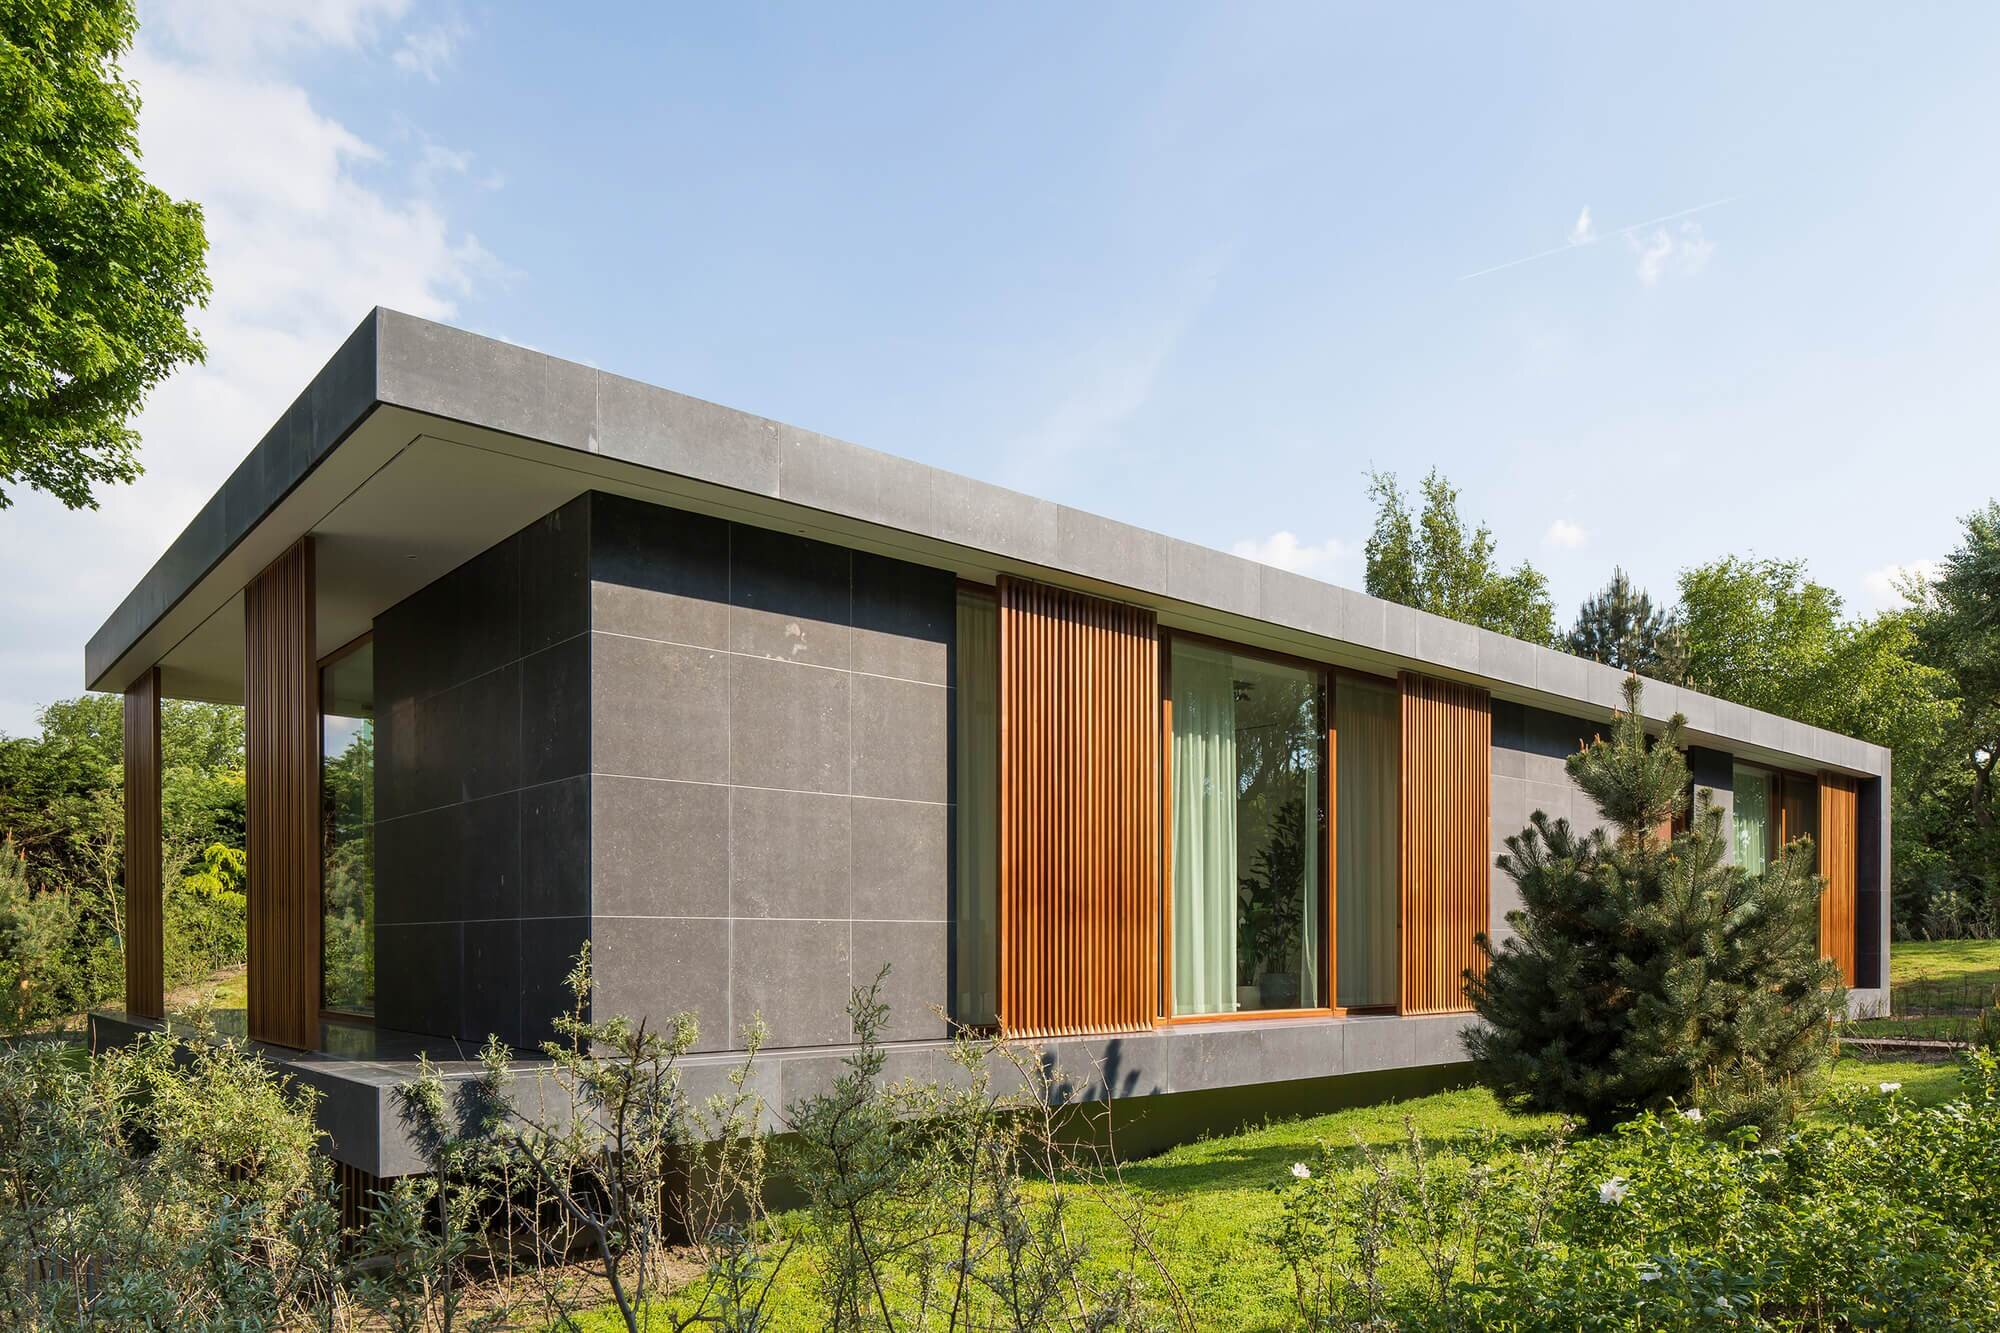 Villa h a contemporary home by berg klein from the for Modern irish house architecture